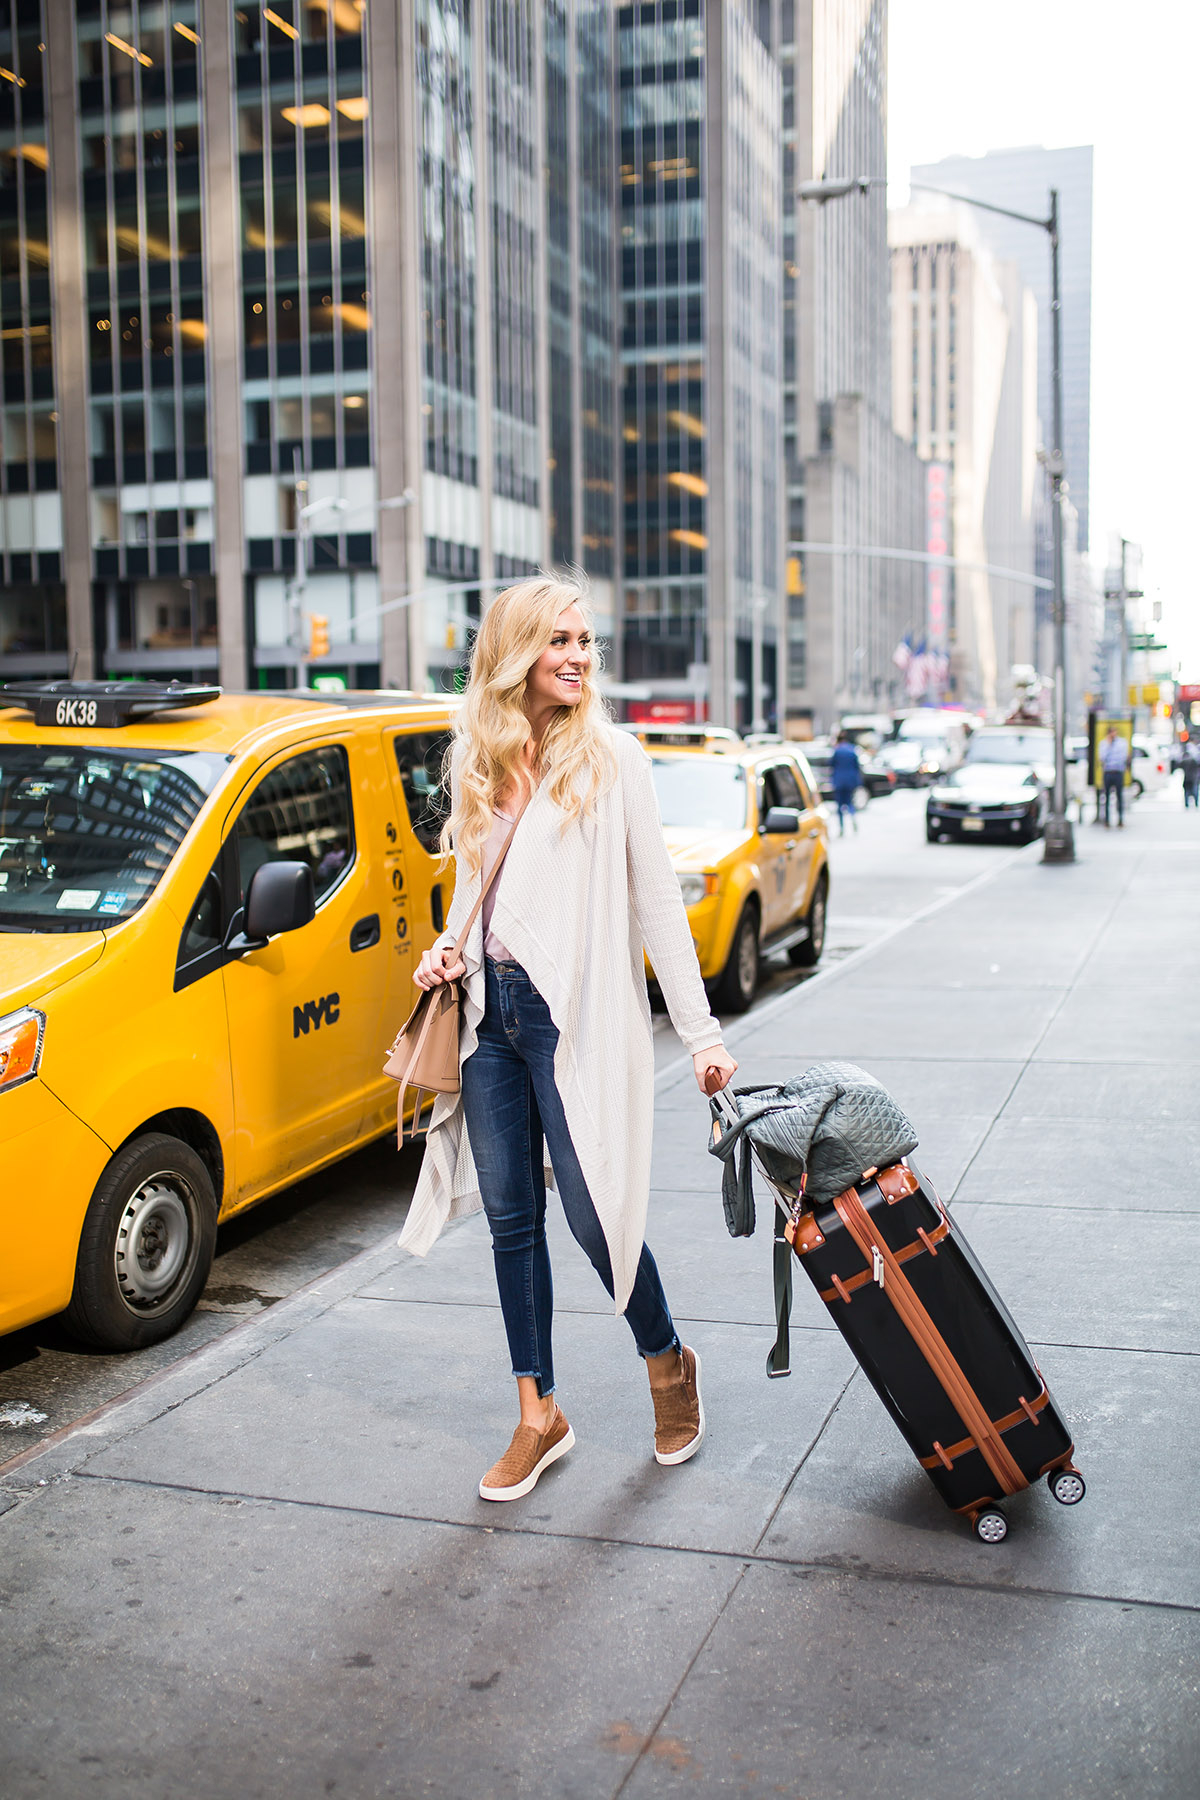 NYC Travel Trips to Avoid Stress Getting Around The City | Favorite Travel Shoe